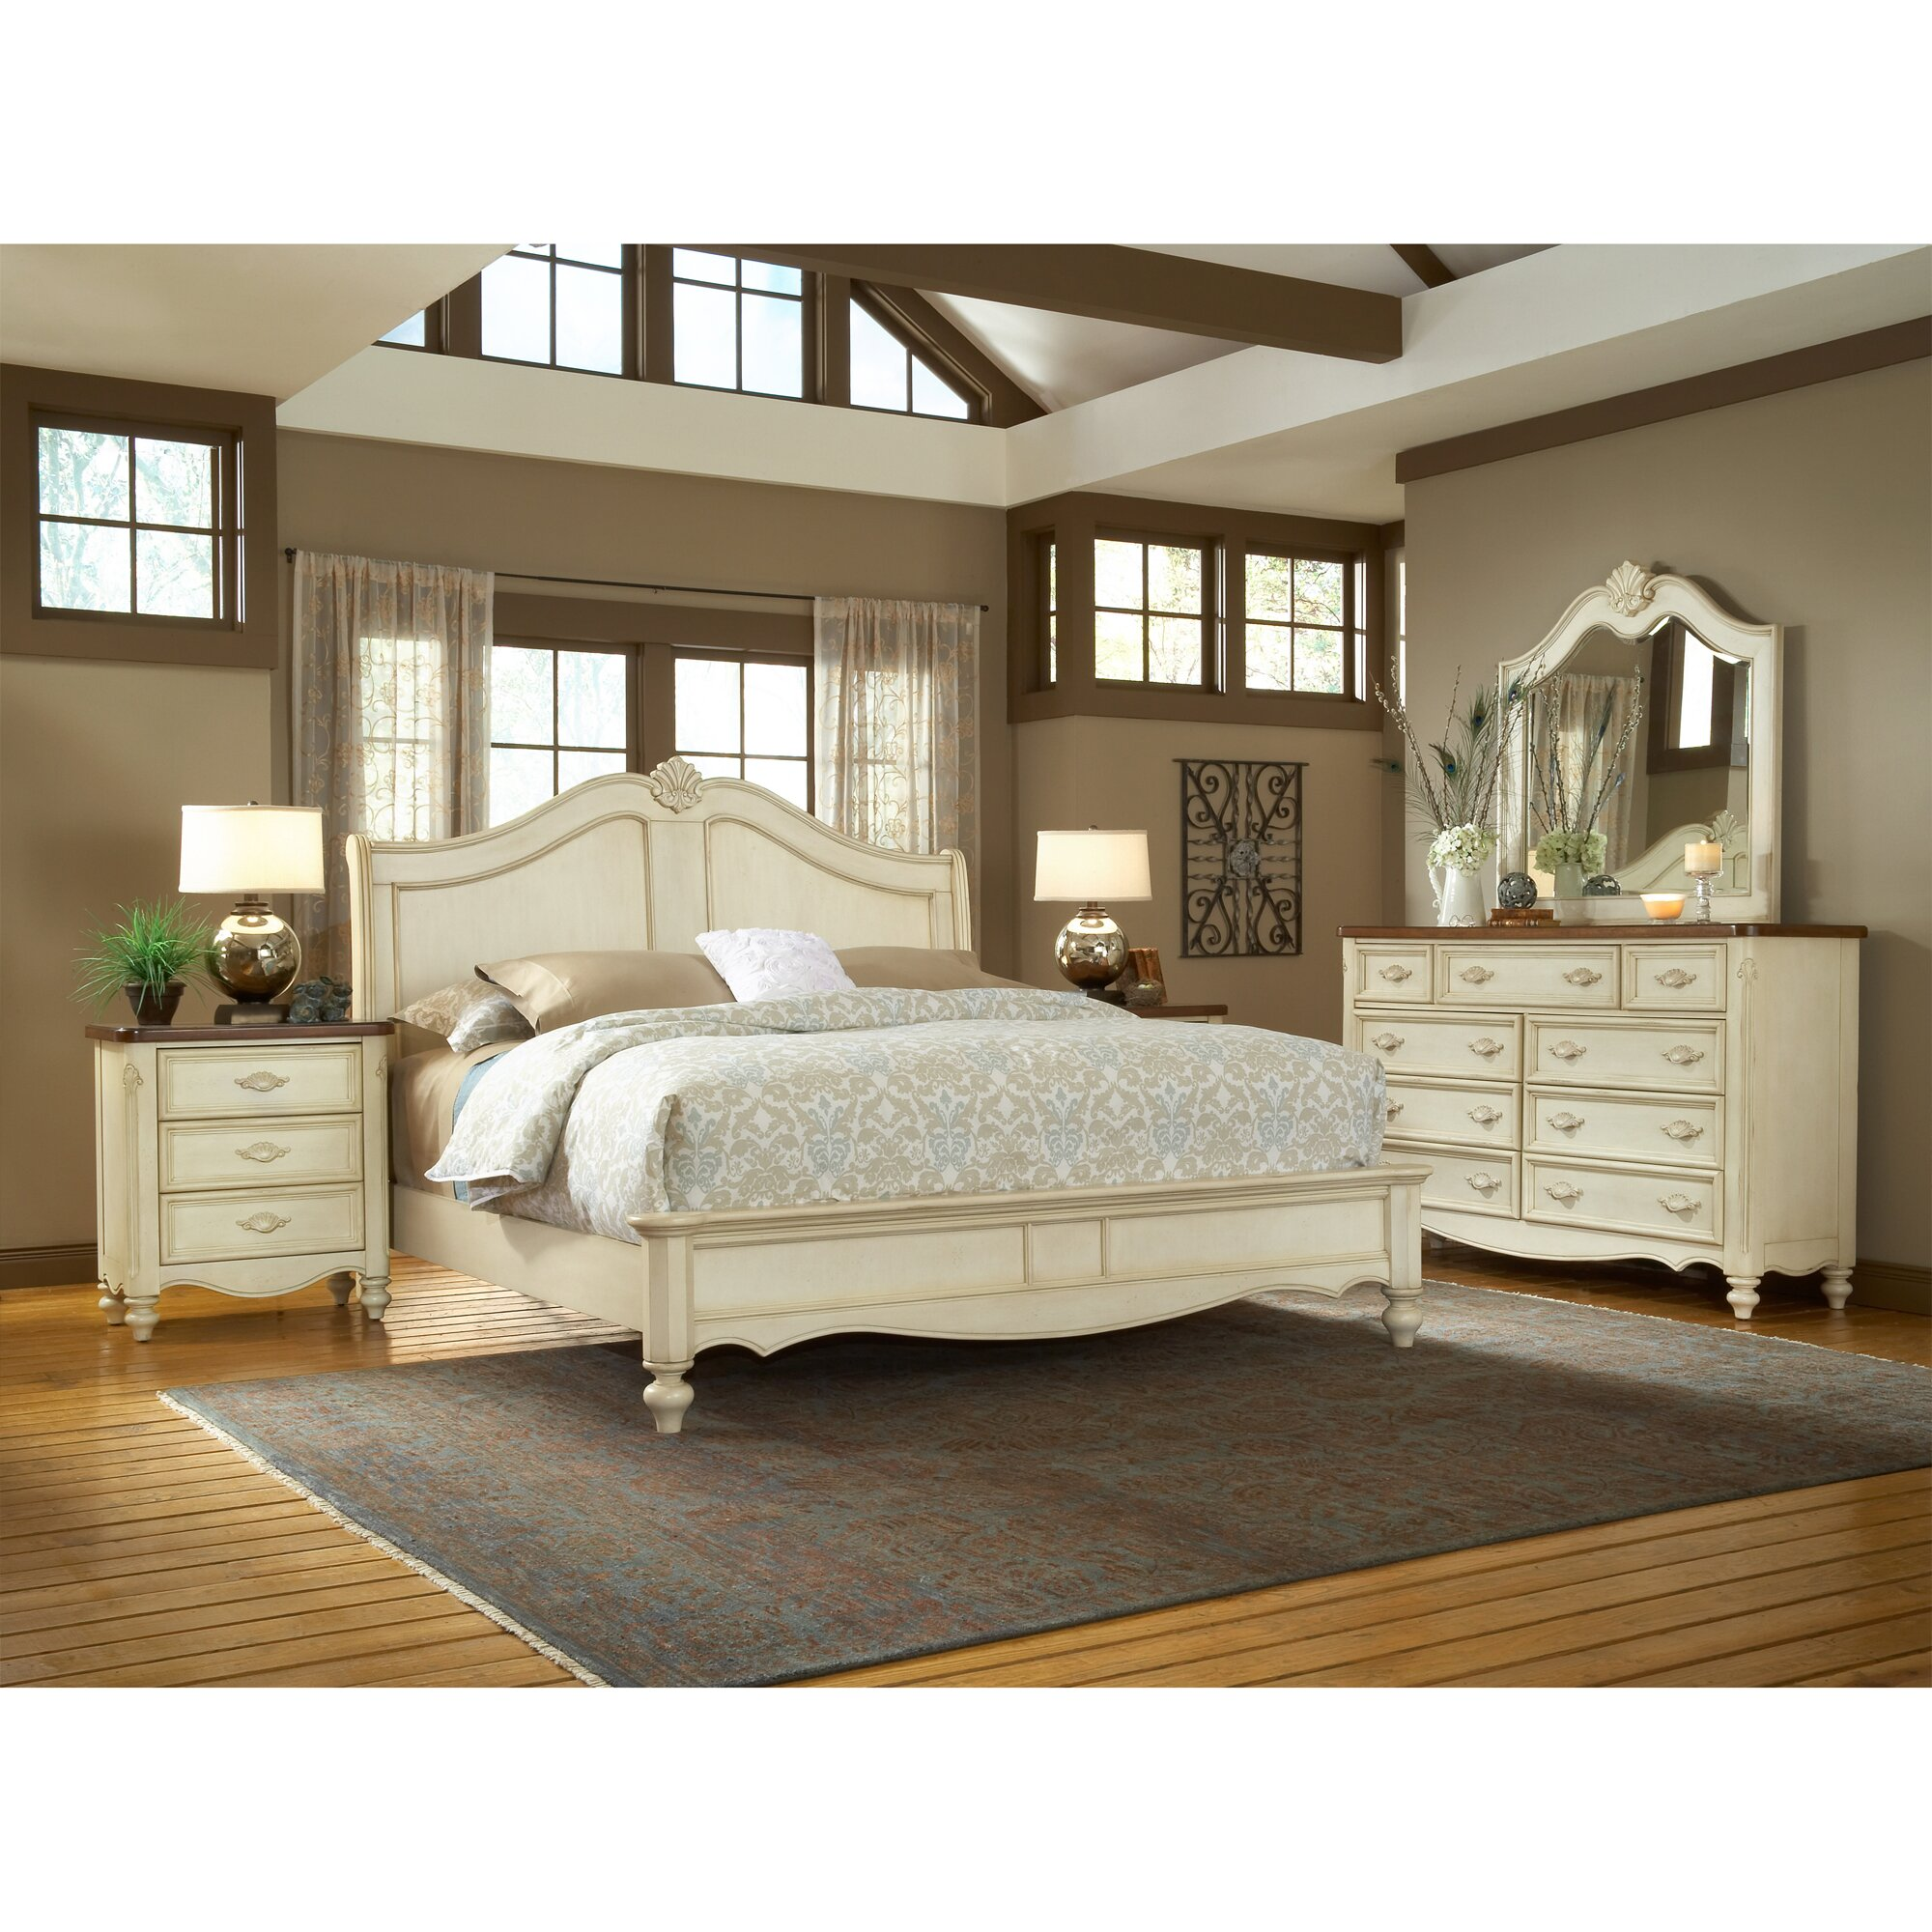 Wayfair Bedroom Sets Snsm155 Com